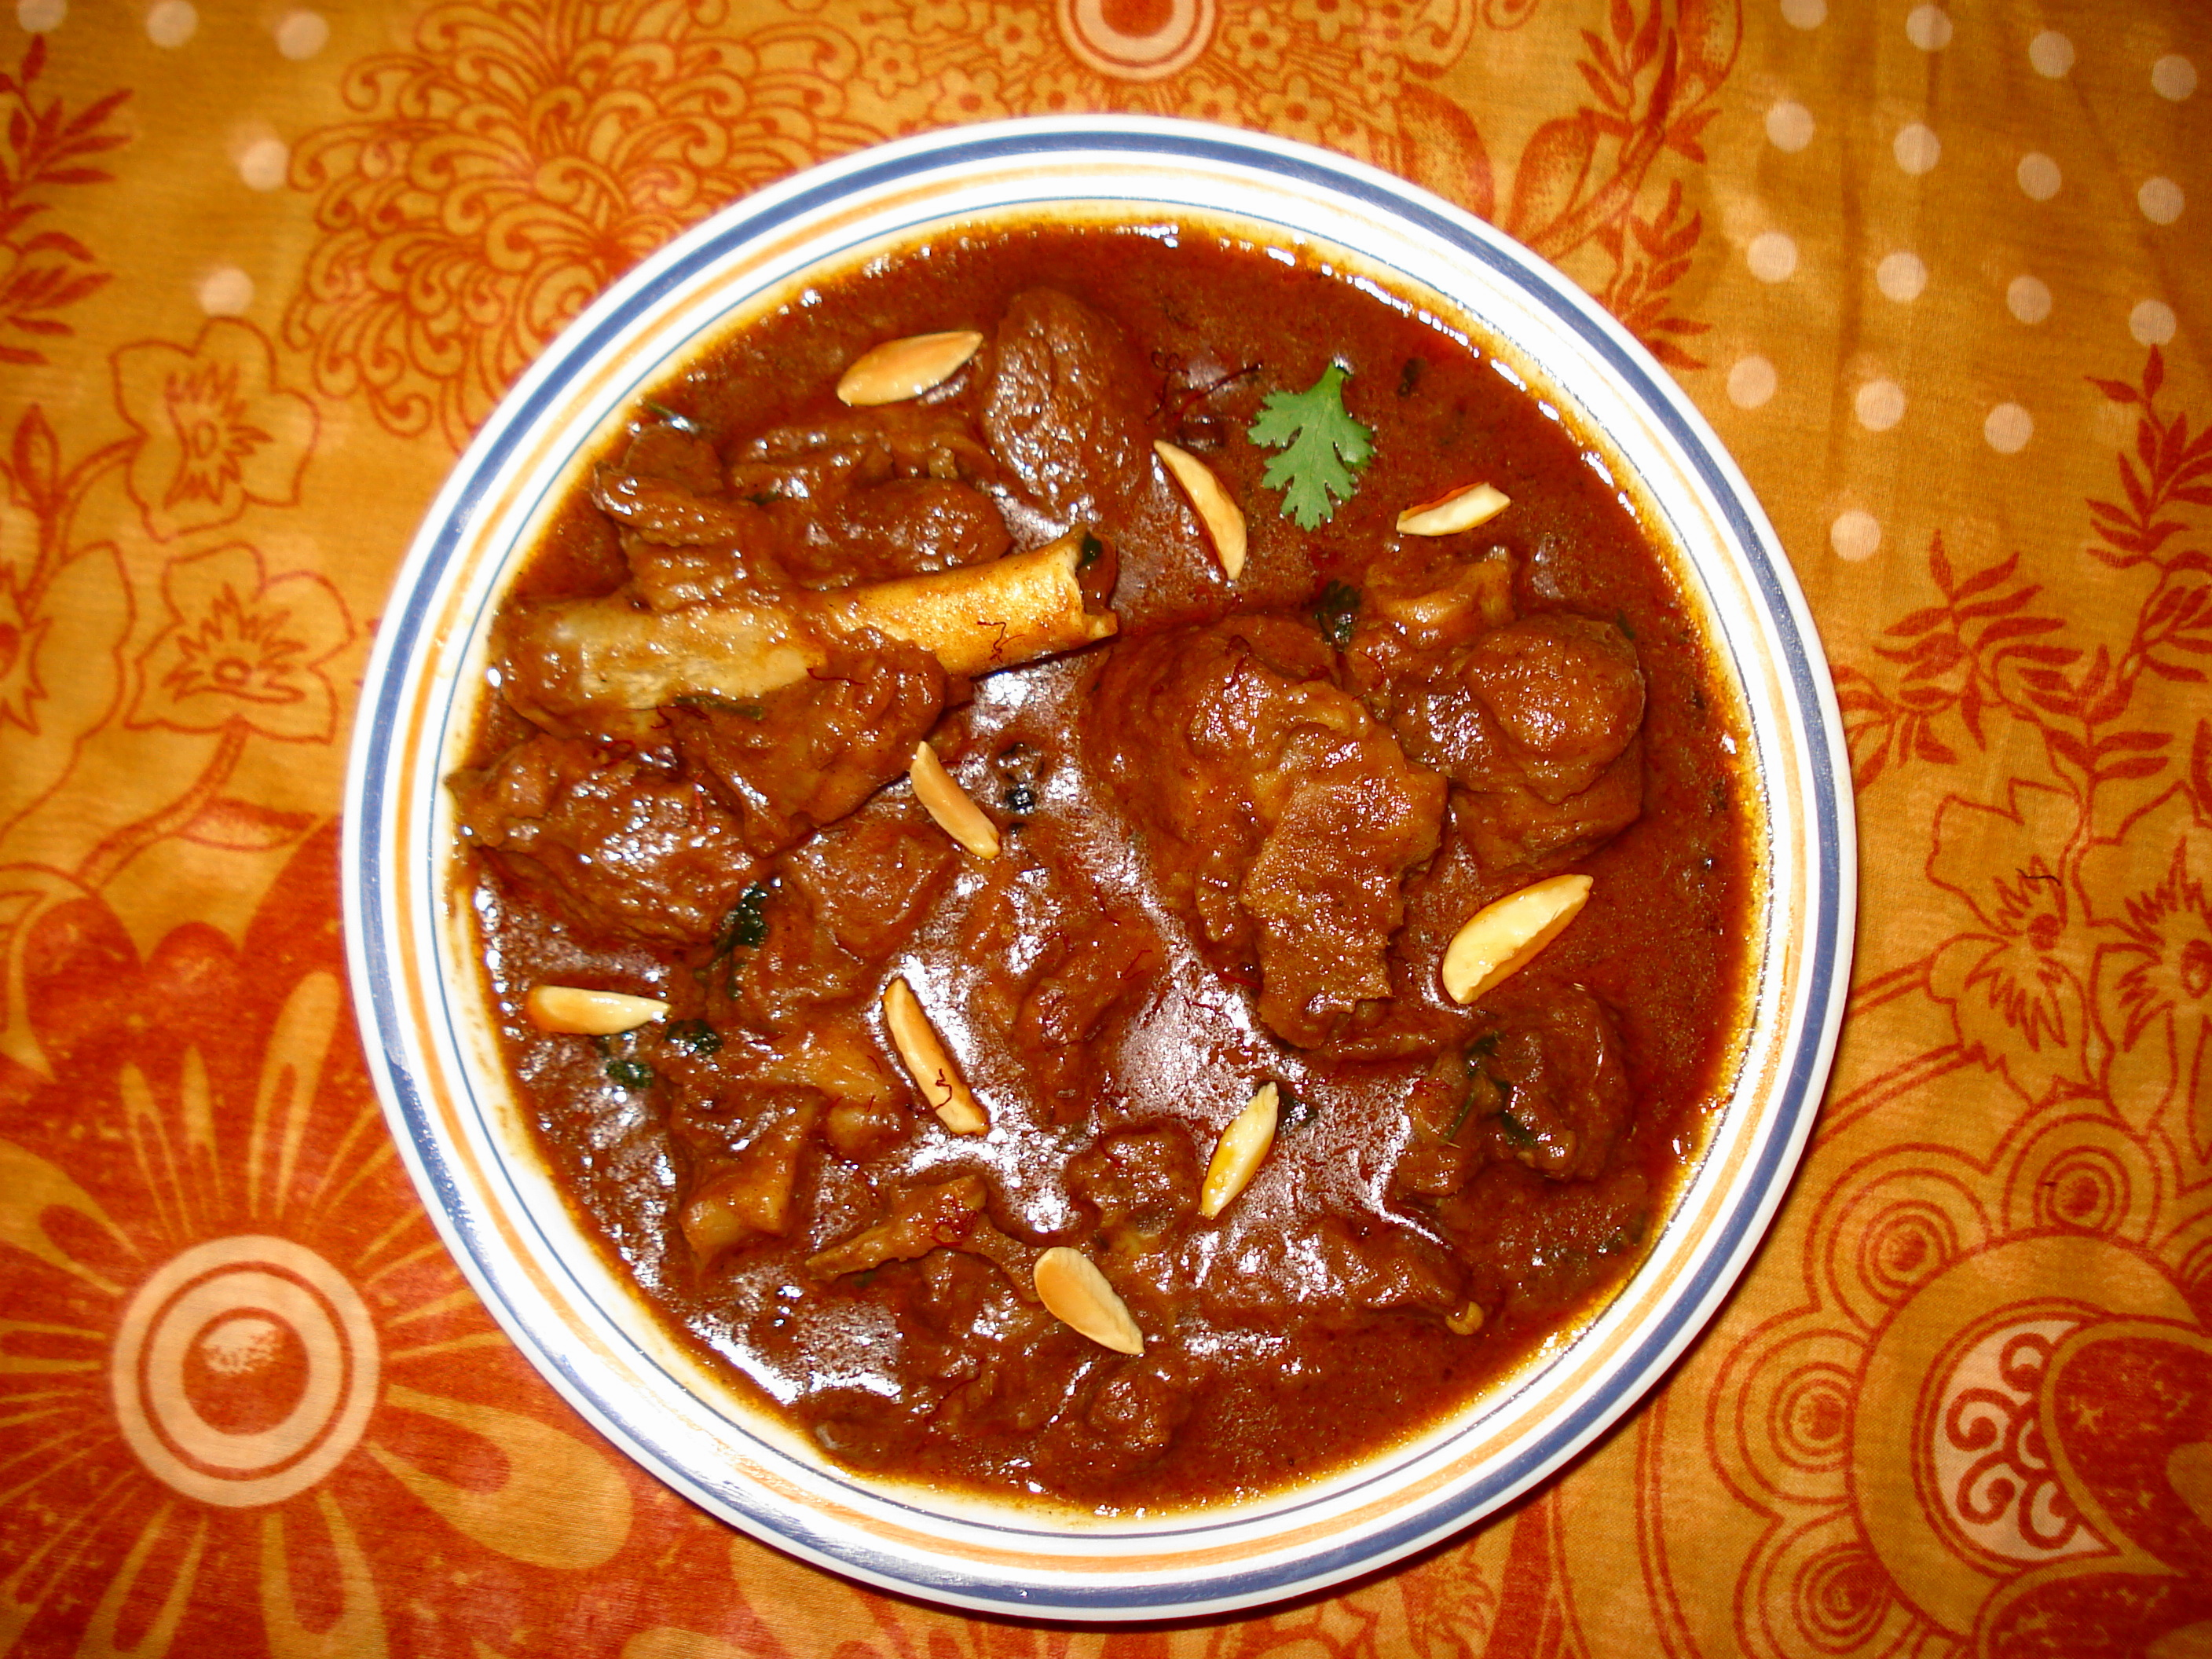 http://upload.wikimedia.org/wikipedia/commons/e/ee/Rogan_Josh.JPG